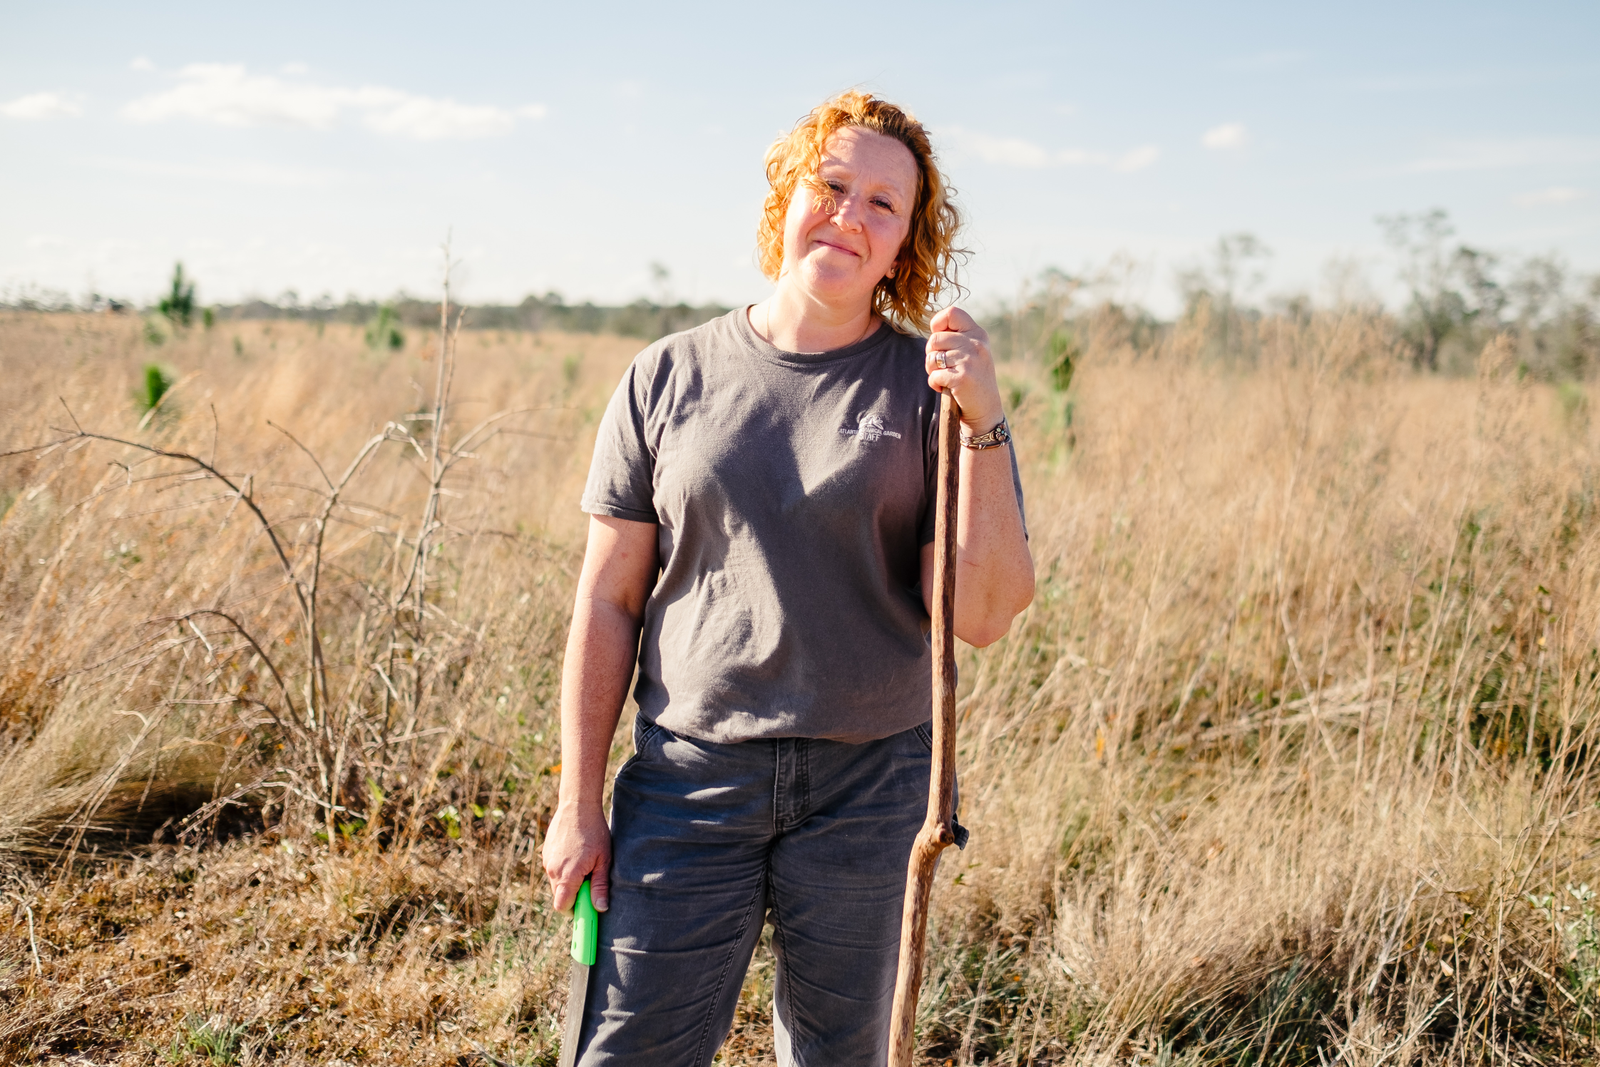 Emily Coffey in the uplands of North Florida after a day of bushwhacking in the steephead ravines.